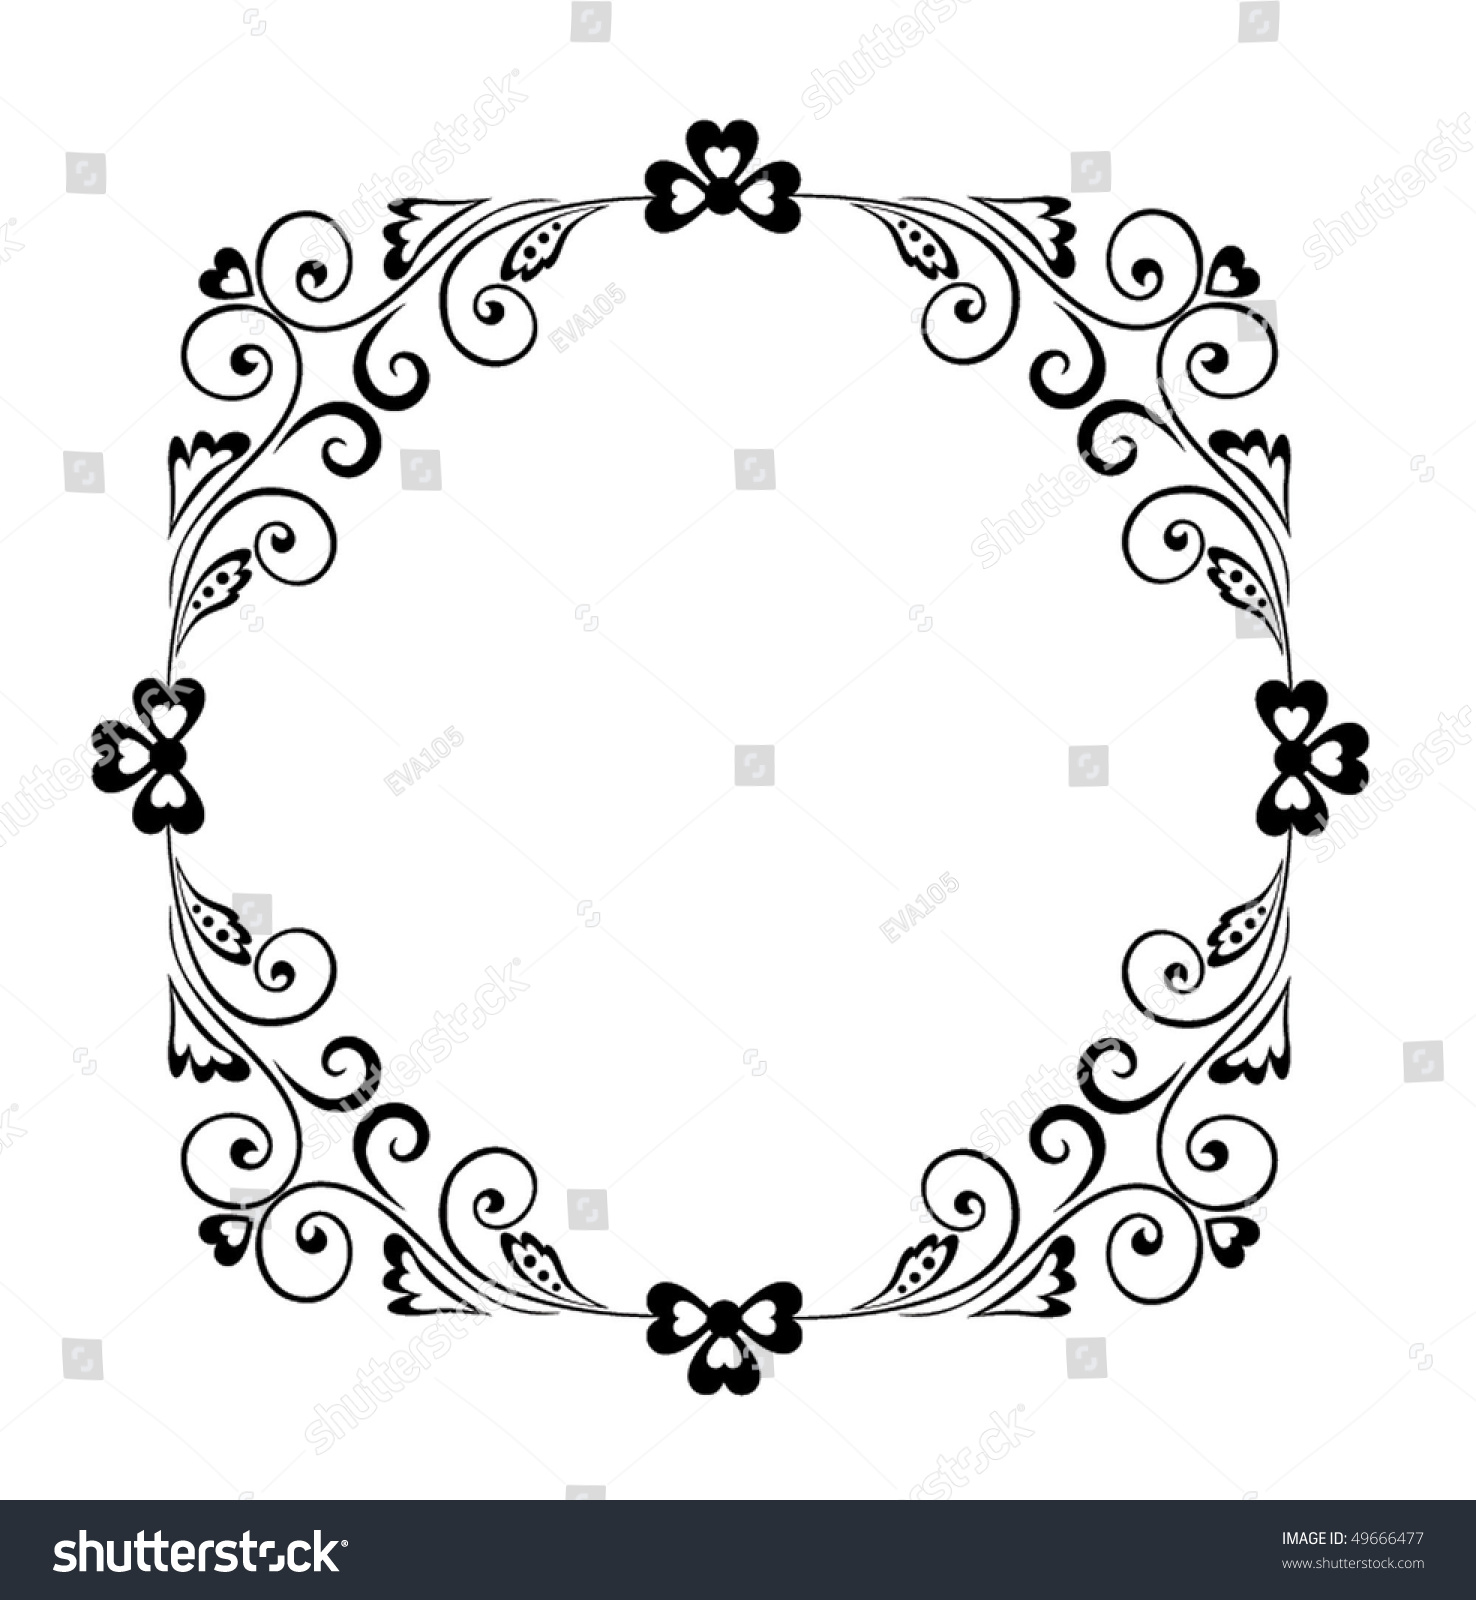 Decorative Black Flower Border Stock Image: Decorative Black Border Stock Vector 49666477